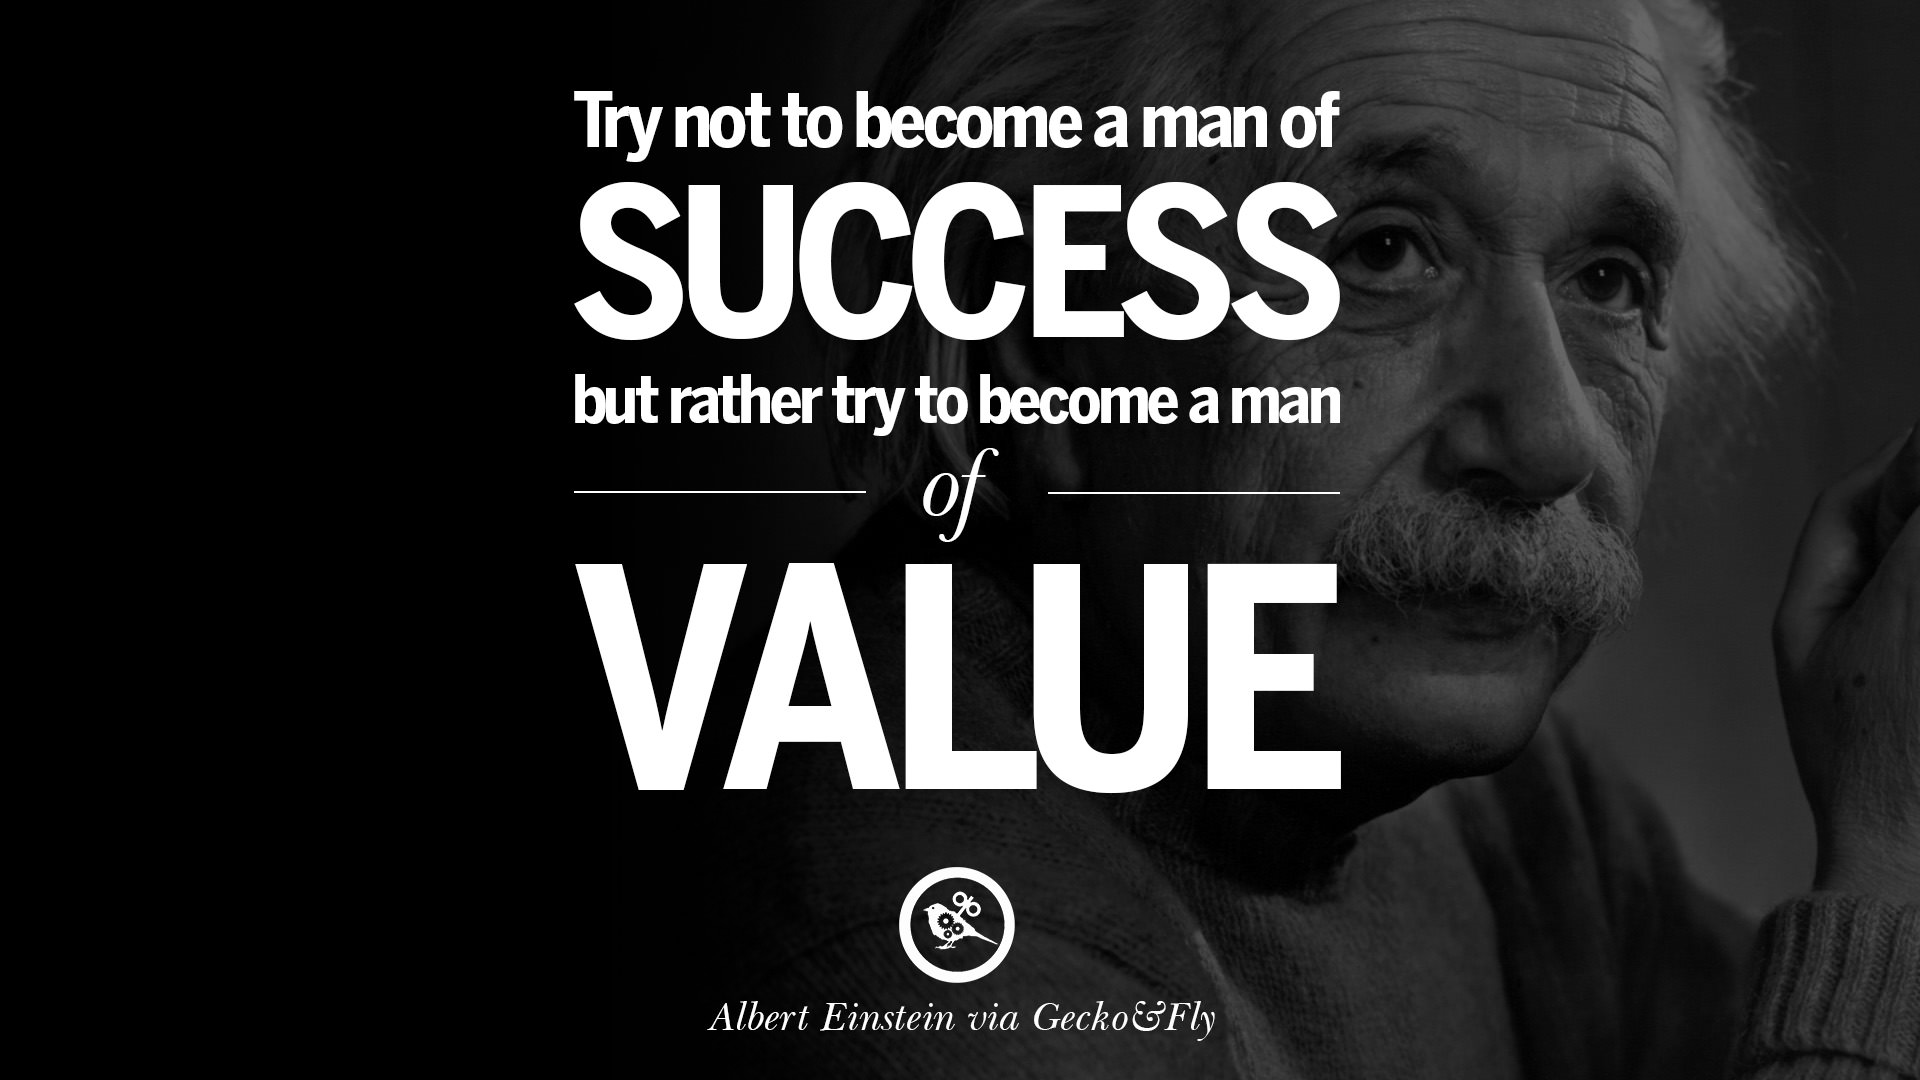 Albert Einstein Quotes 40 Beautiful Albert Einstein Quotes On God Life Knowledge And